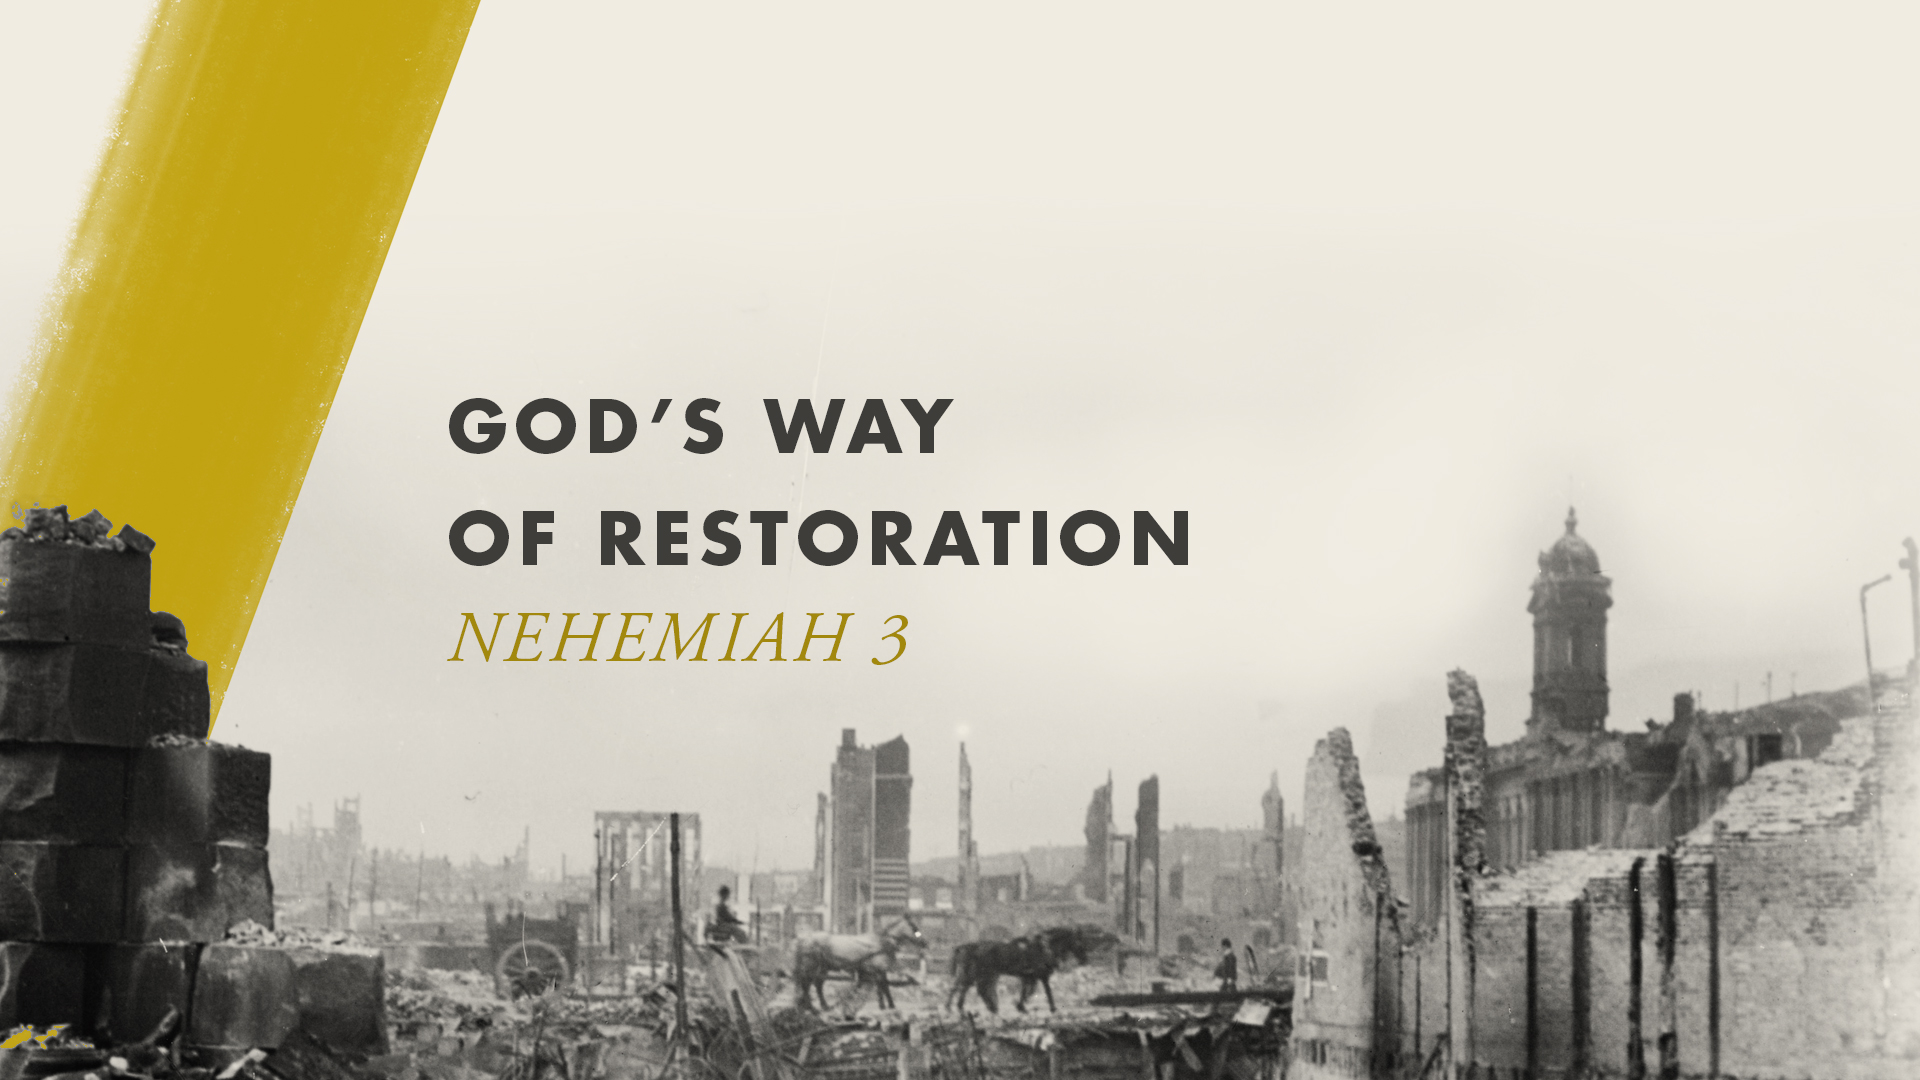 God's Way of Restoration